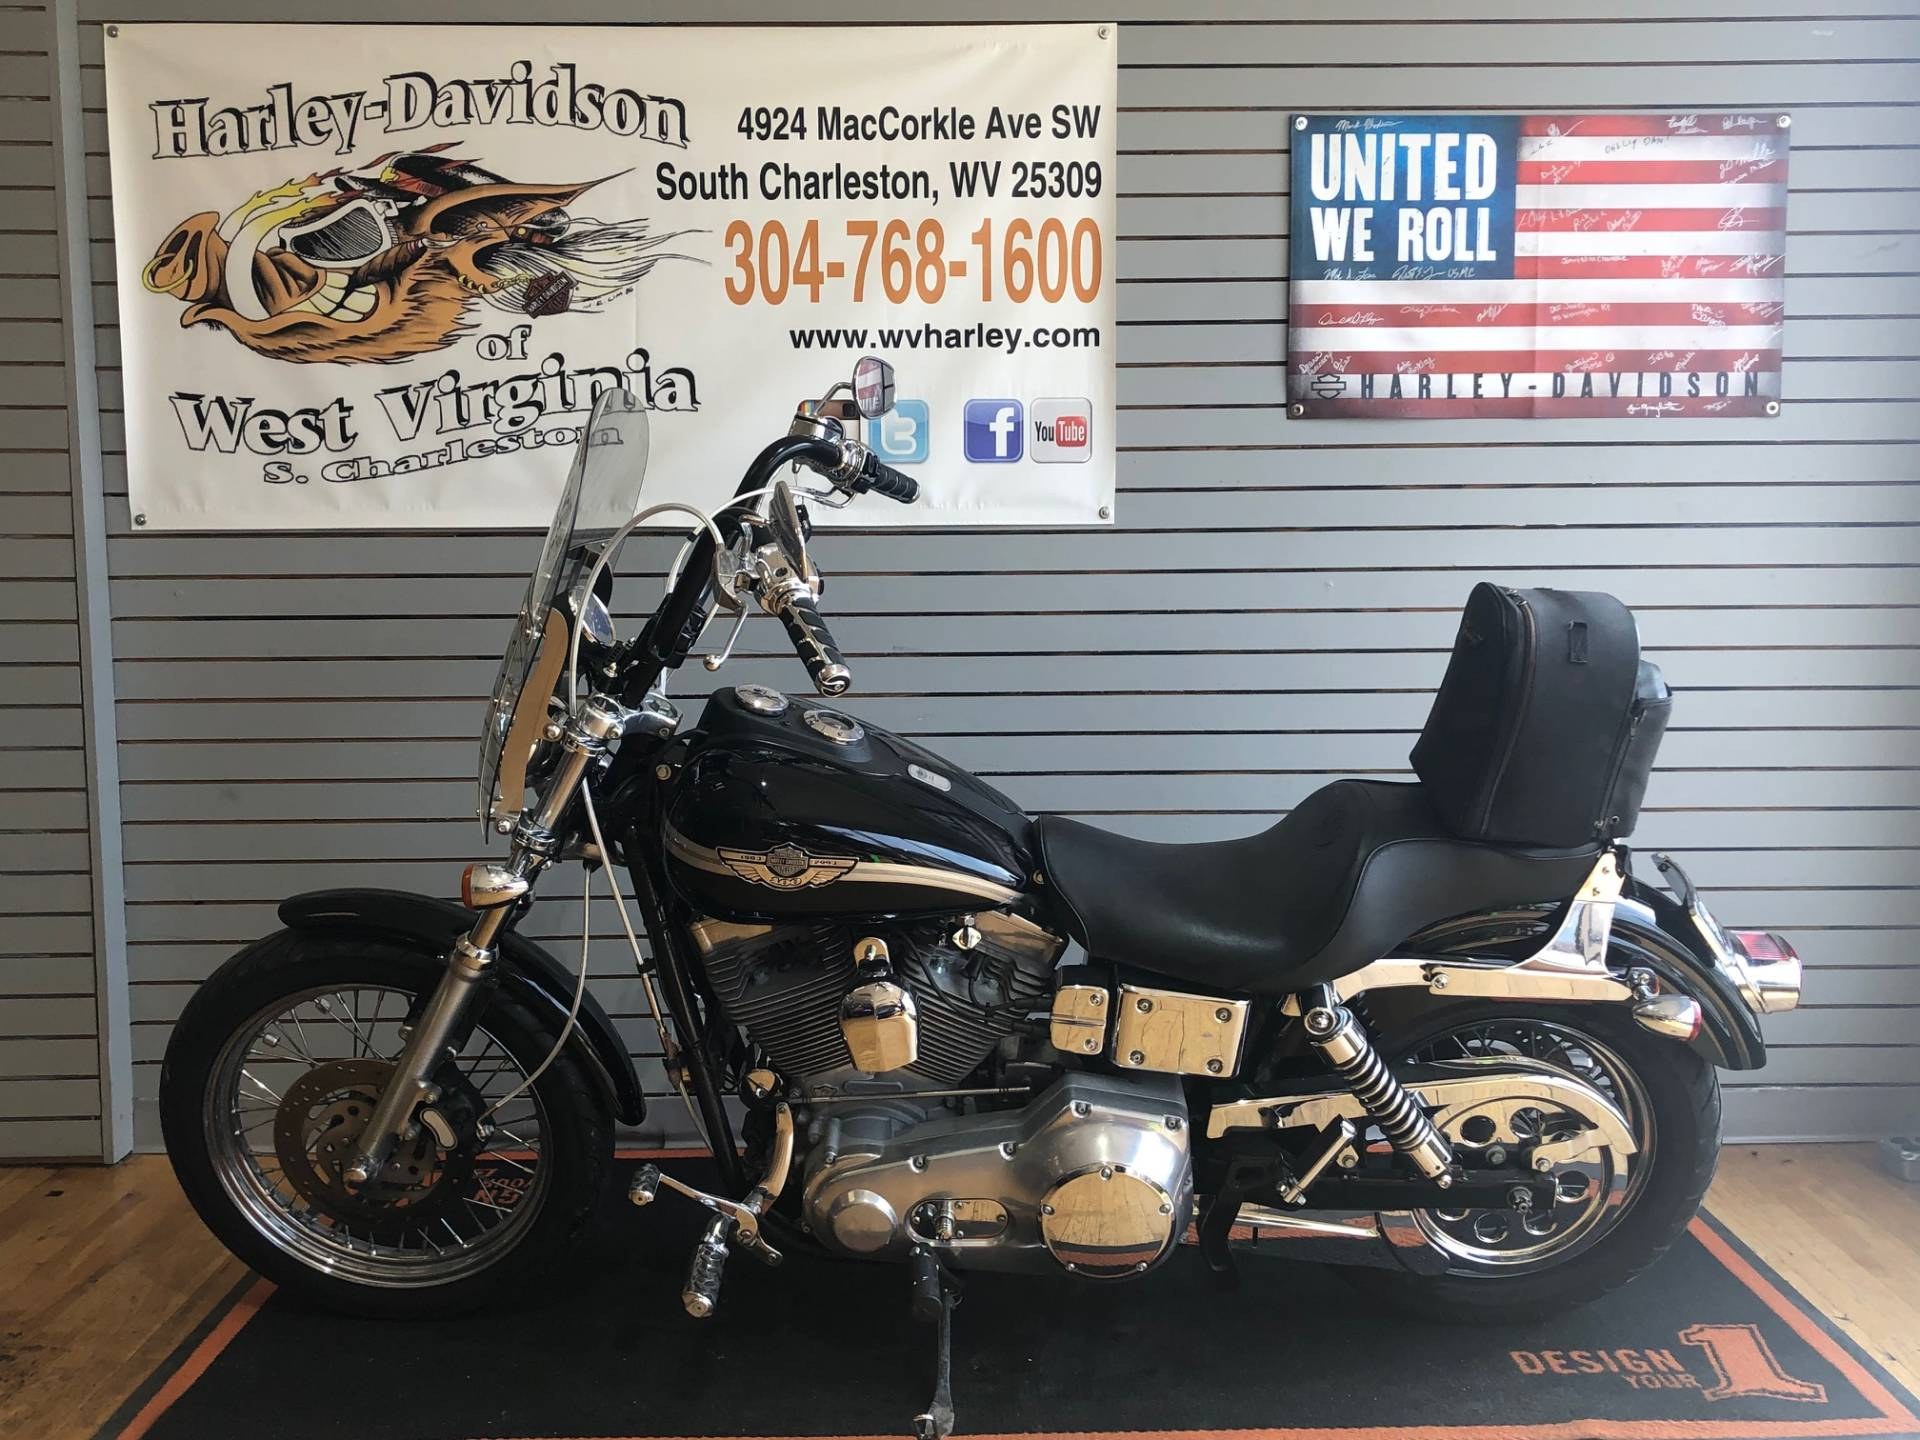 2003 Harley-Davidson FXD Dyna Super Glide® in South Charleston, West Virginia - Photo 4